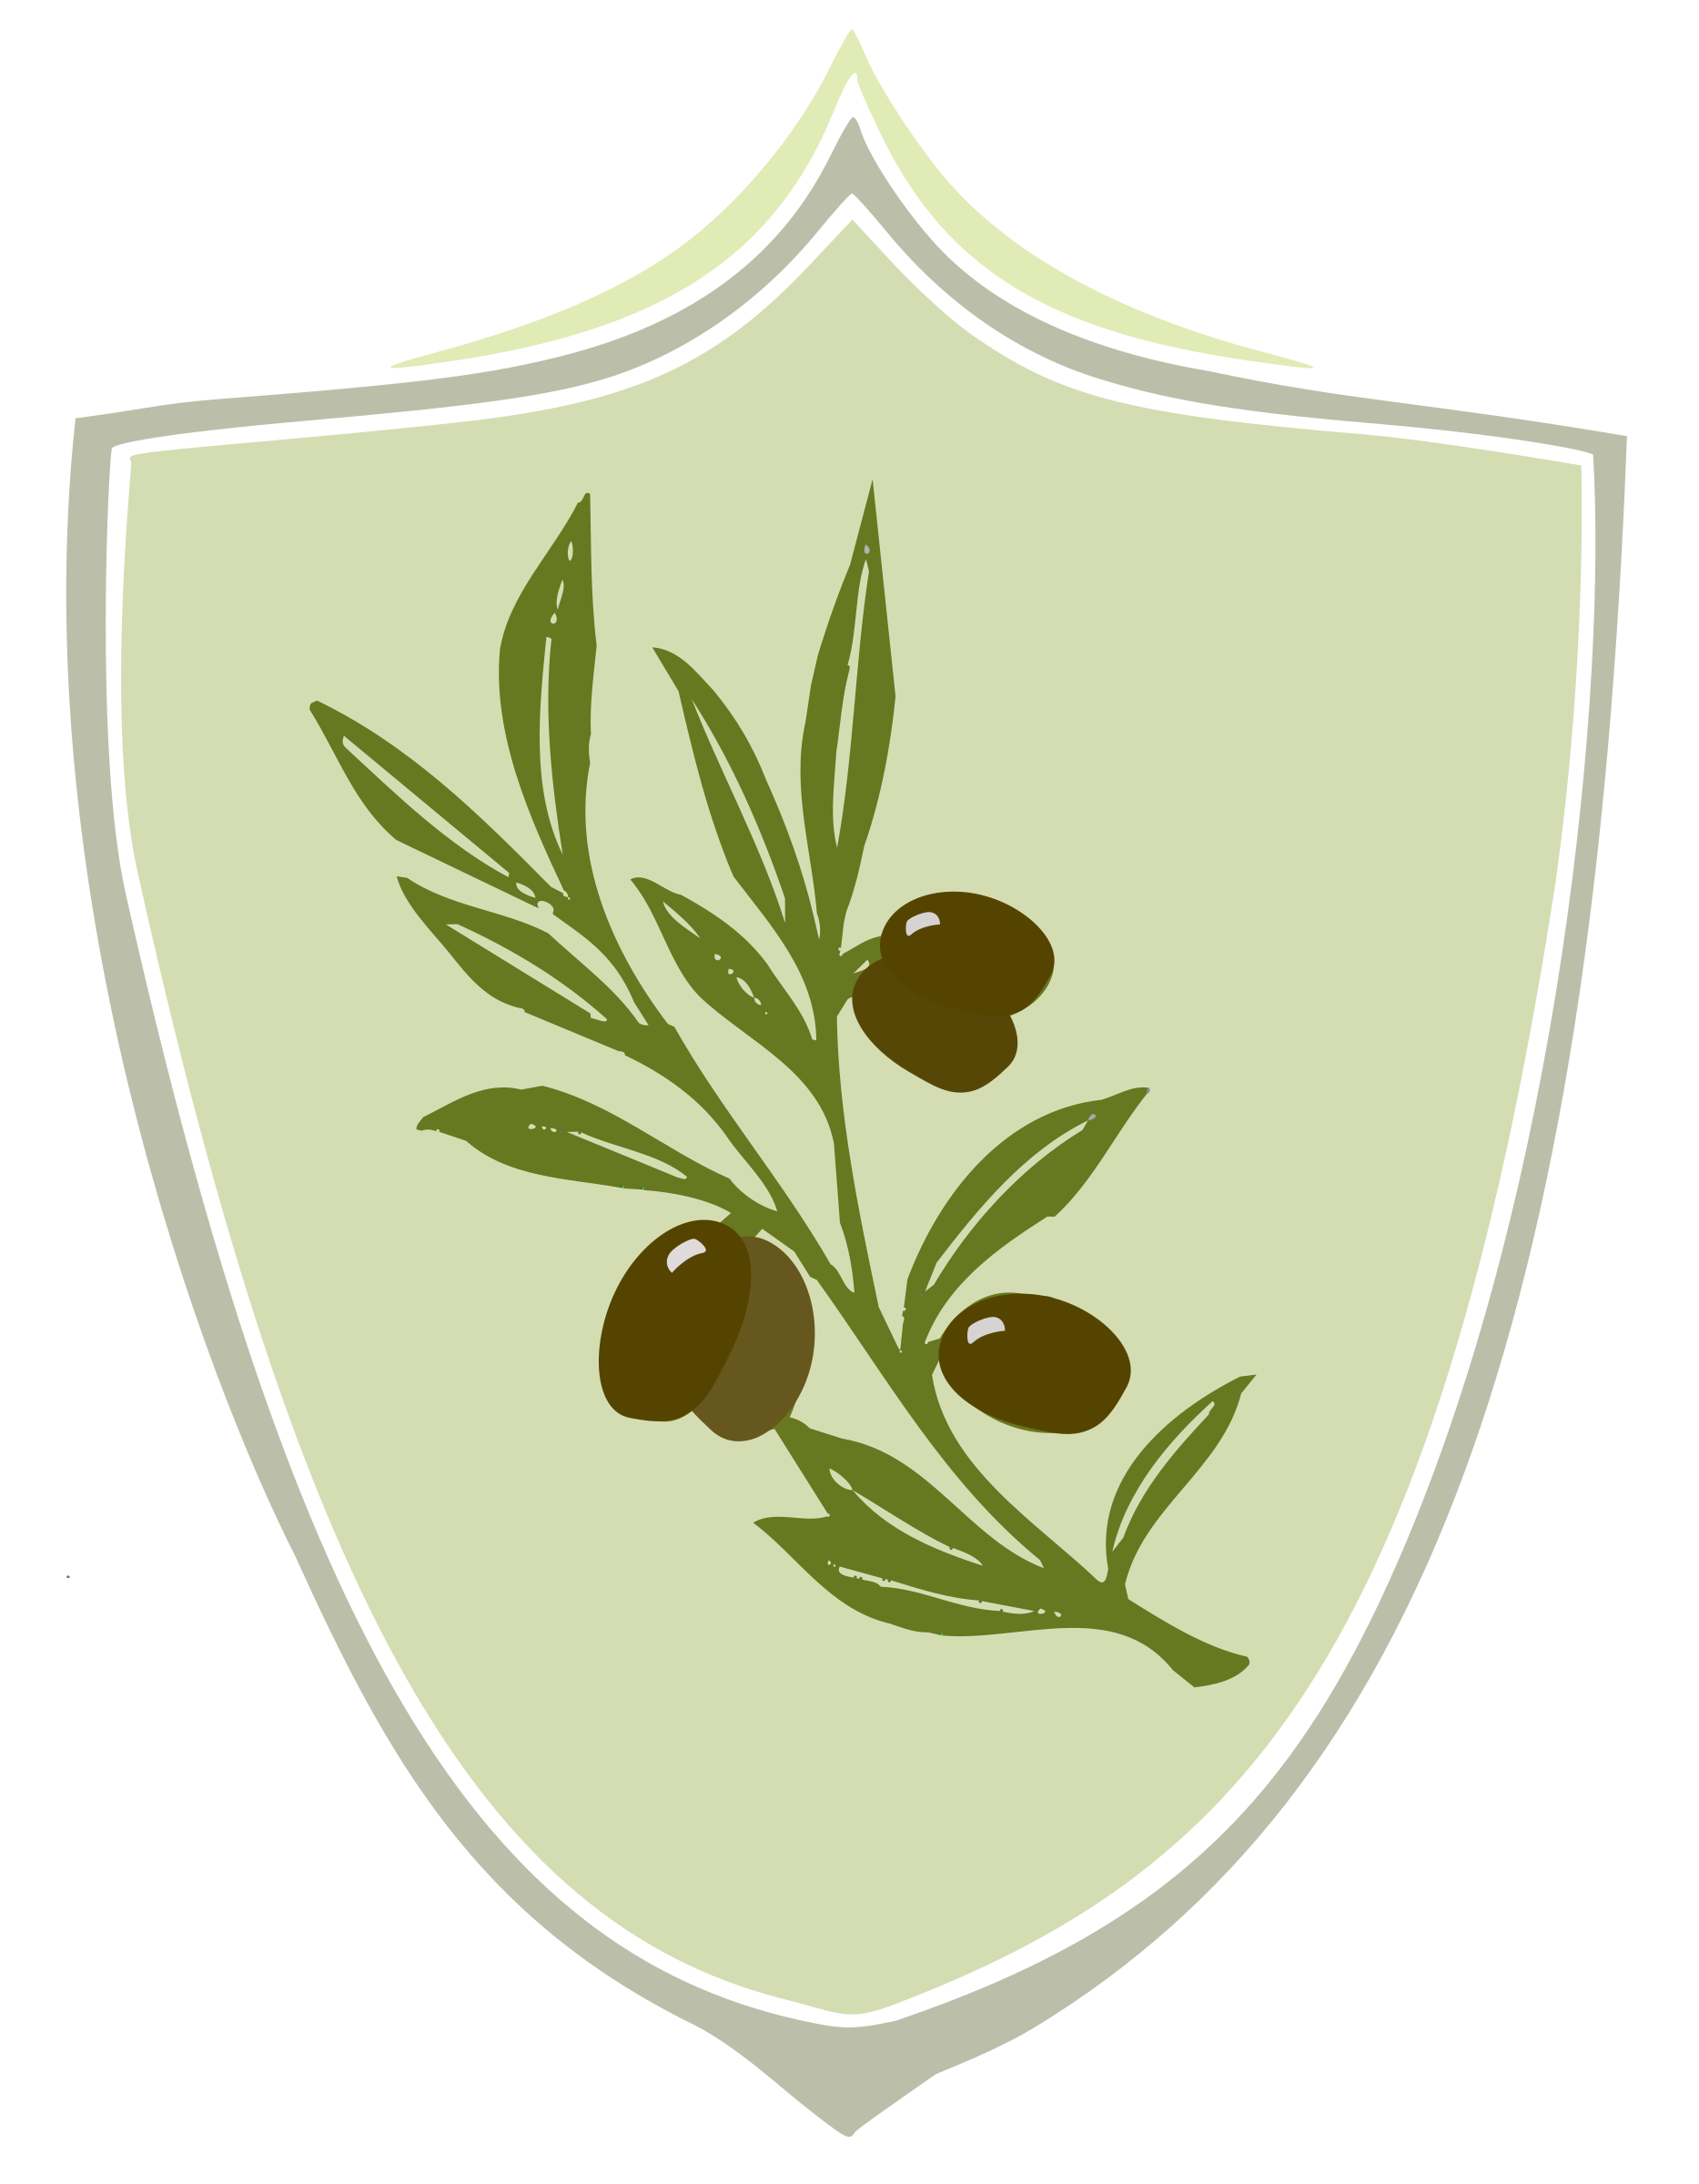 Olive coat of arms by Trostereiret